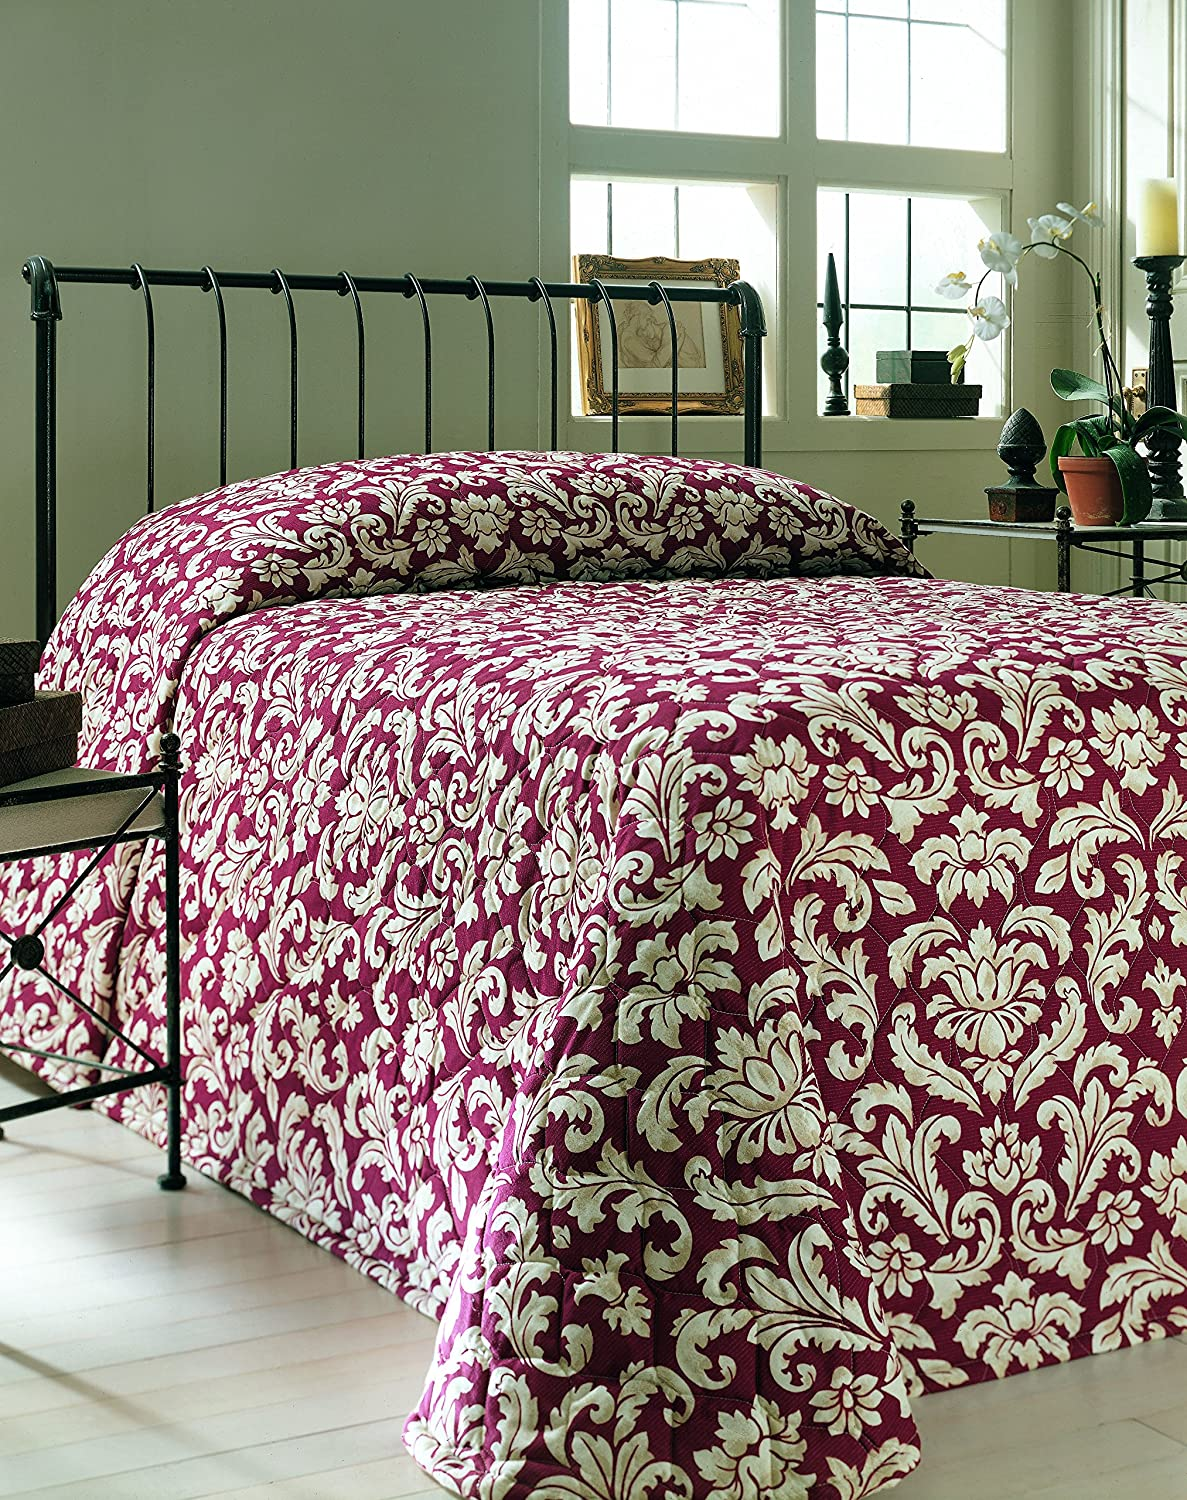 Martex 1C75892 Bedspread 71-Inch x 102-Inch Twin Fitted Vienna Chianti 1-Pack WestPoint Home